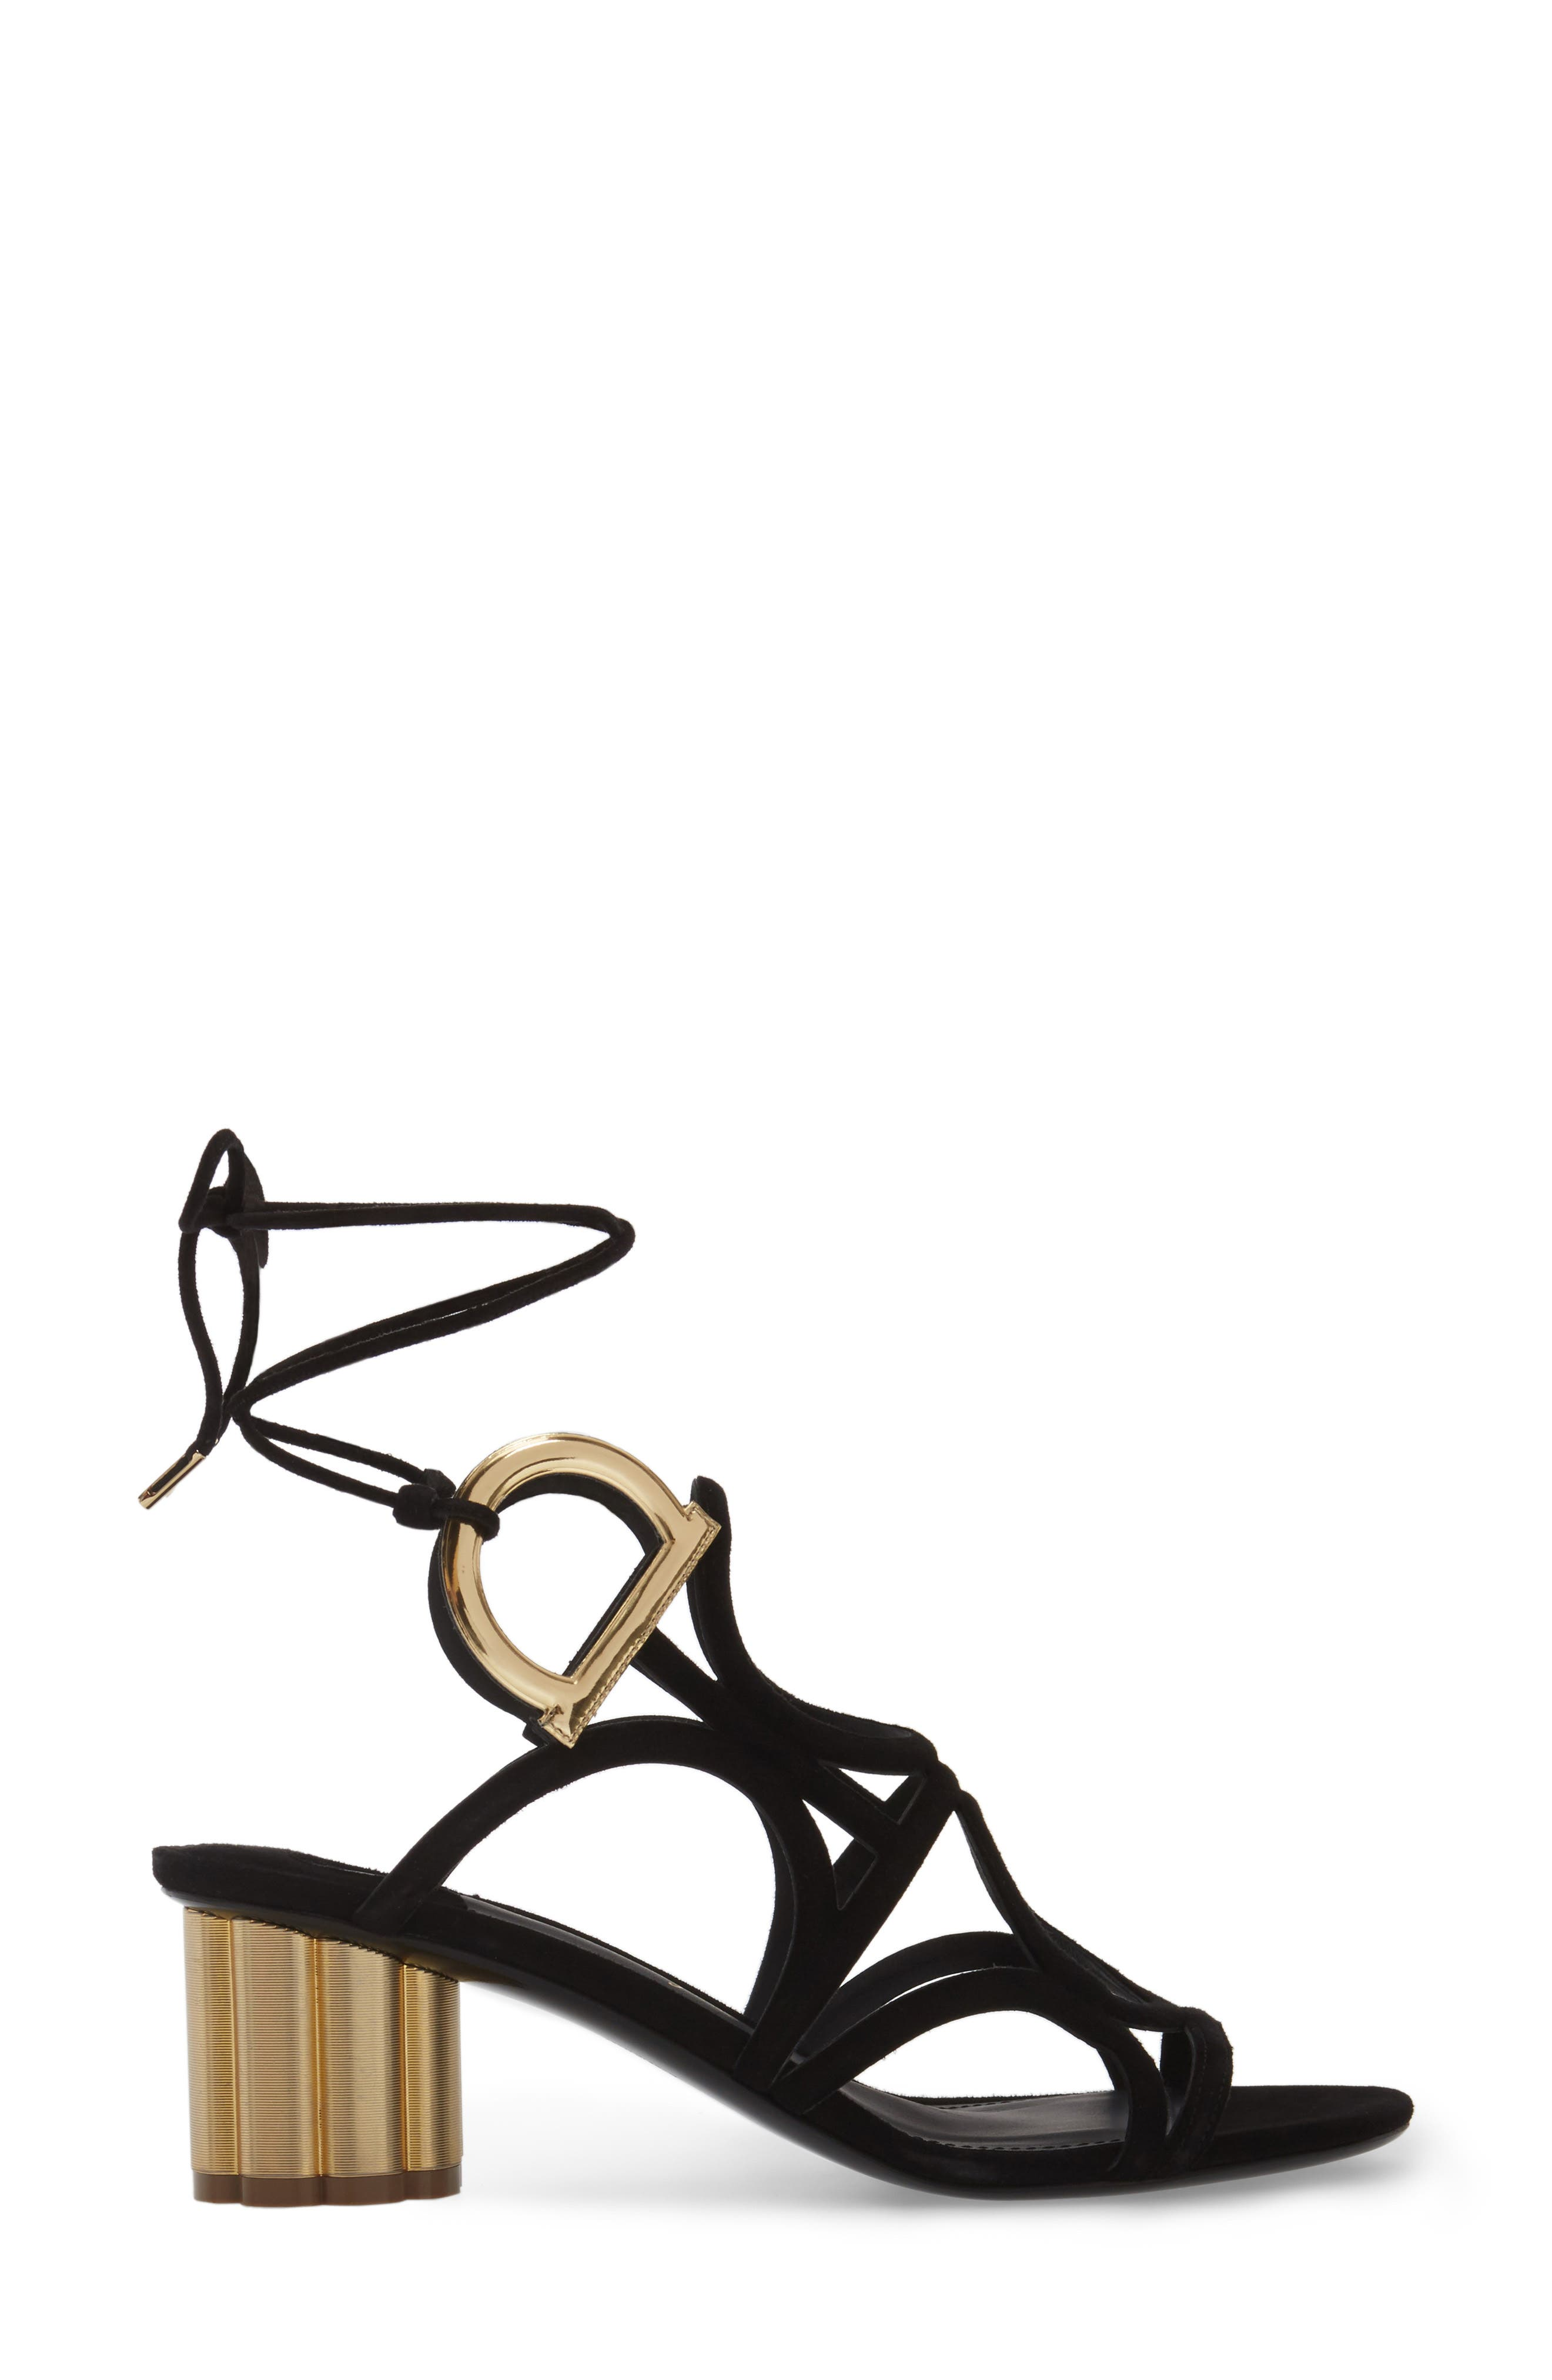 Vinci Lace-Up Block Heel Sandal,                             Alternate thumbnail 3, color,                             BLACK SUEDE